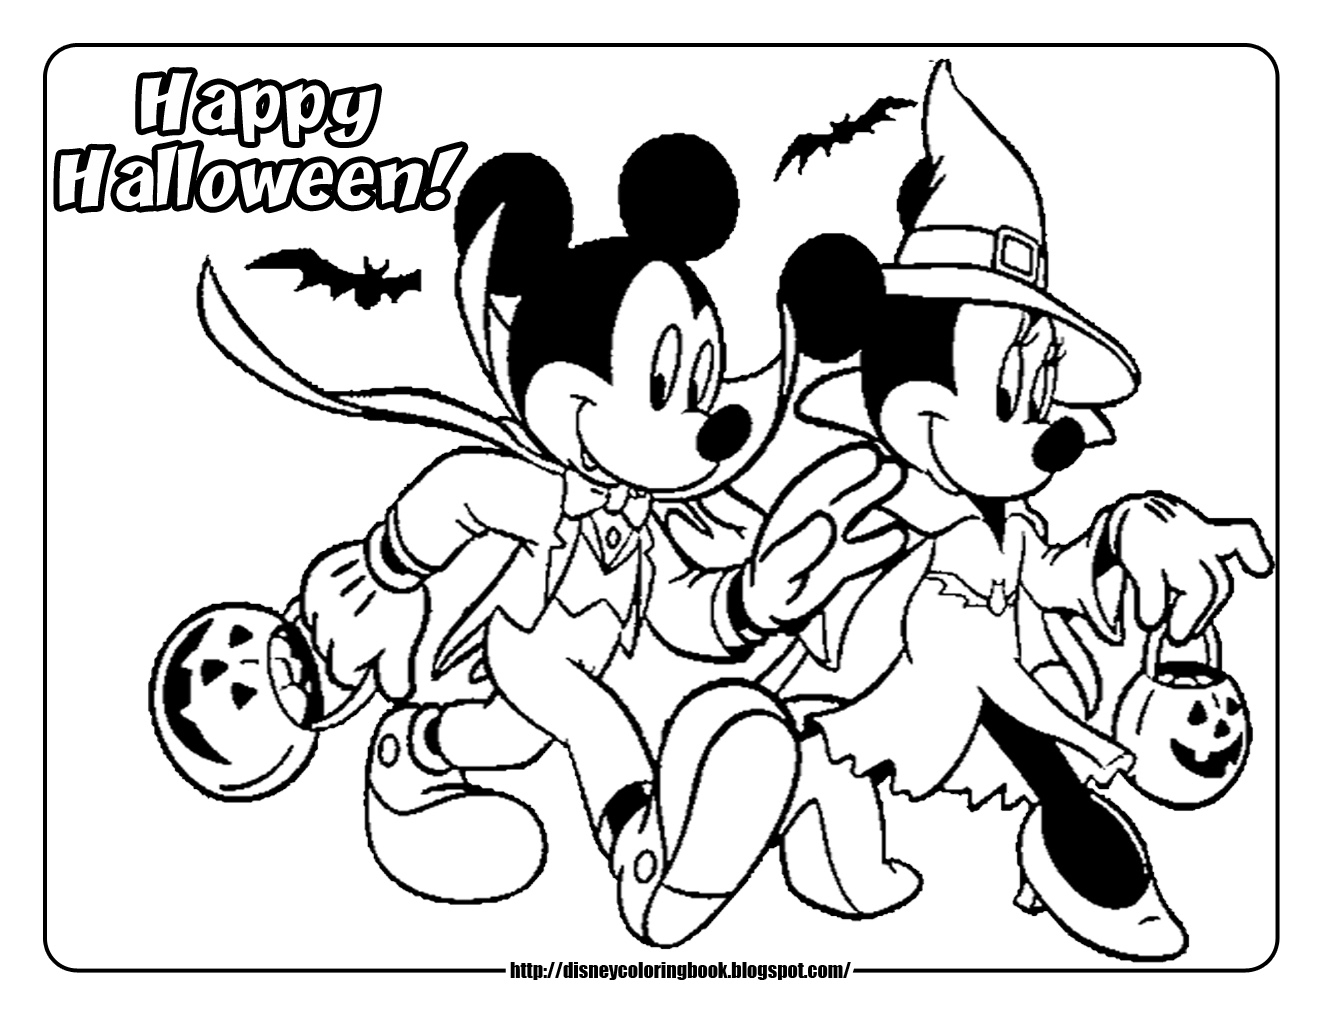 1320x1020 Cool Printable Halloween Coloring Pages To Print Happy Monster